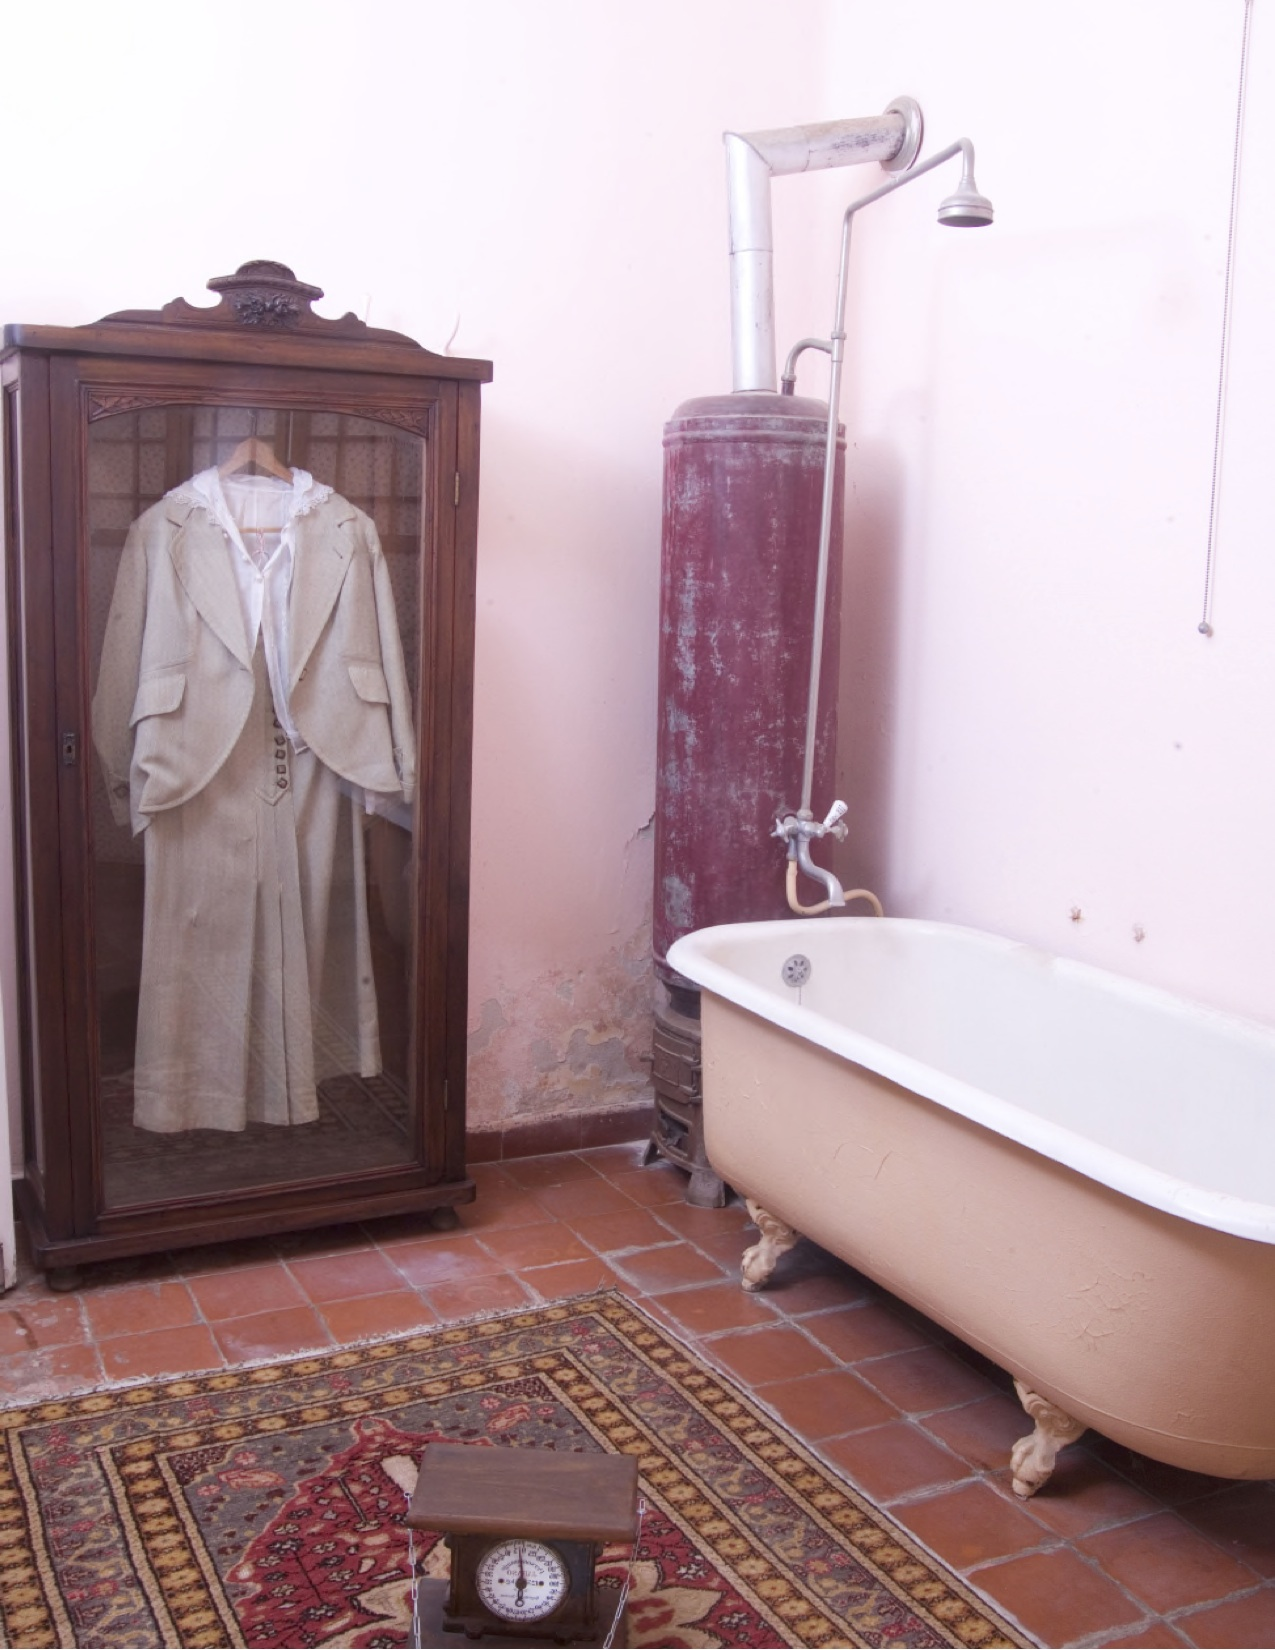 Aaron's bathroom preserved as it was on October 5, 1917